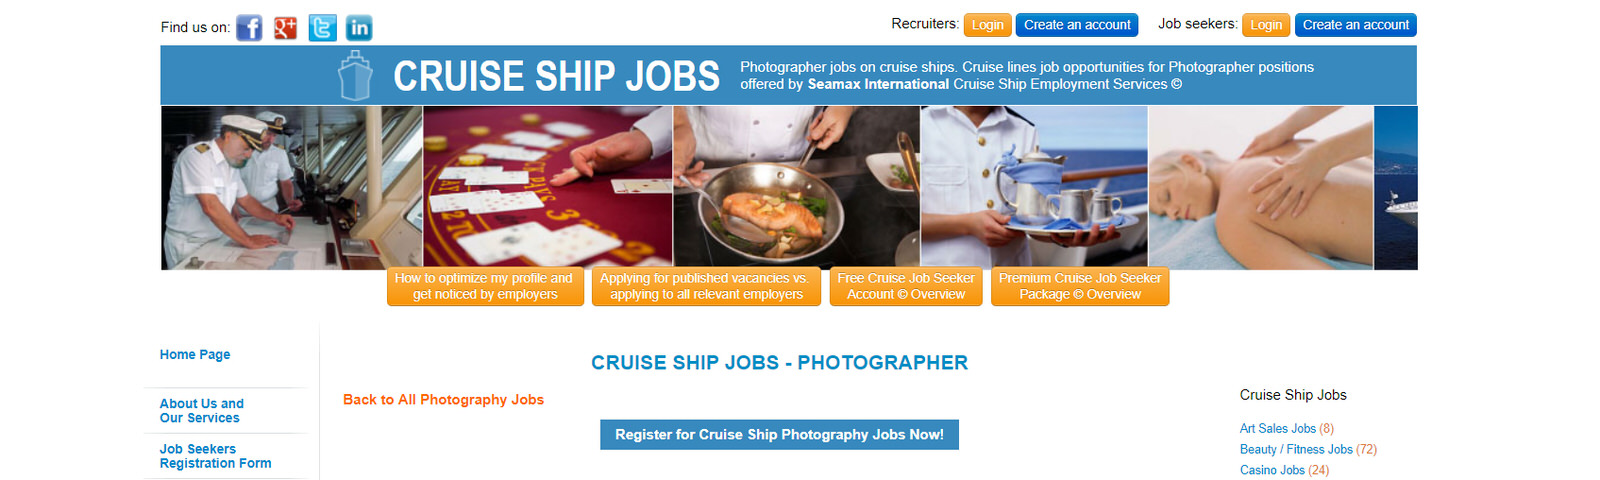 If You Want To Work On Cruise Ships In Any Capacity This Site Has The Opportunities For As A Ship Photographer Would Do Many Jobs